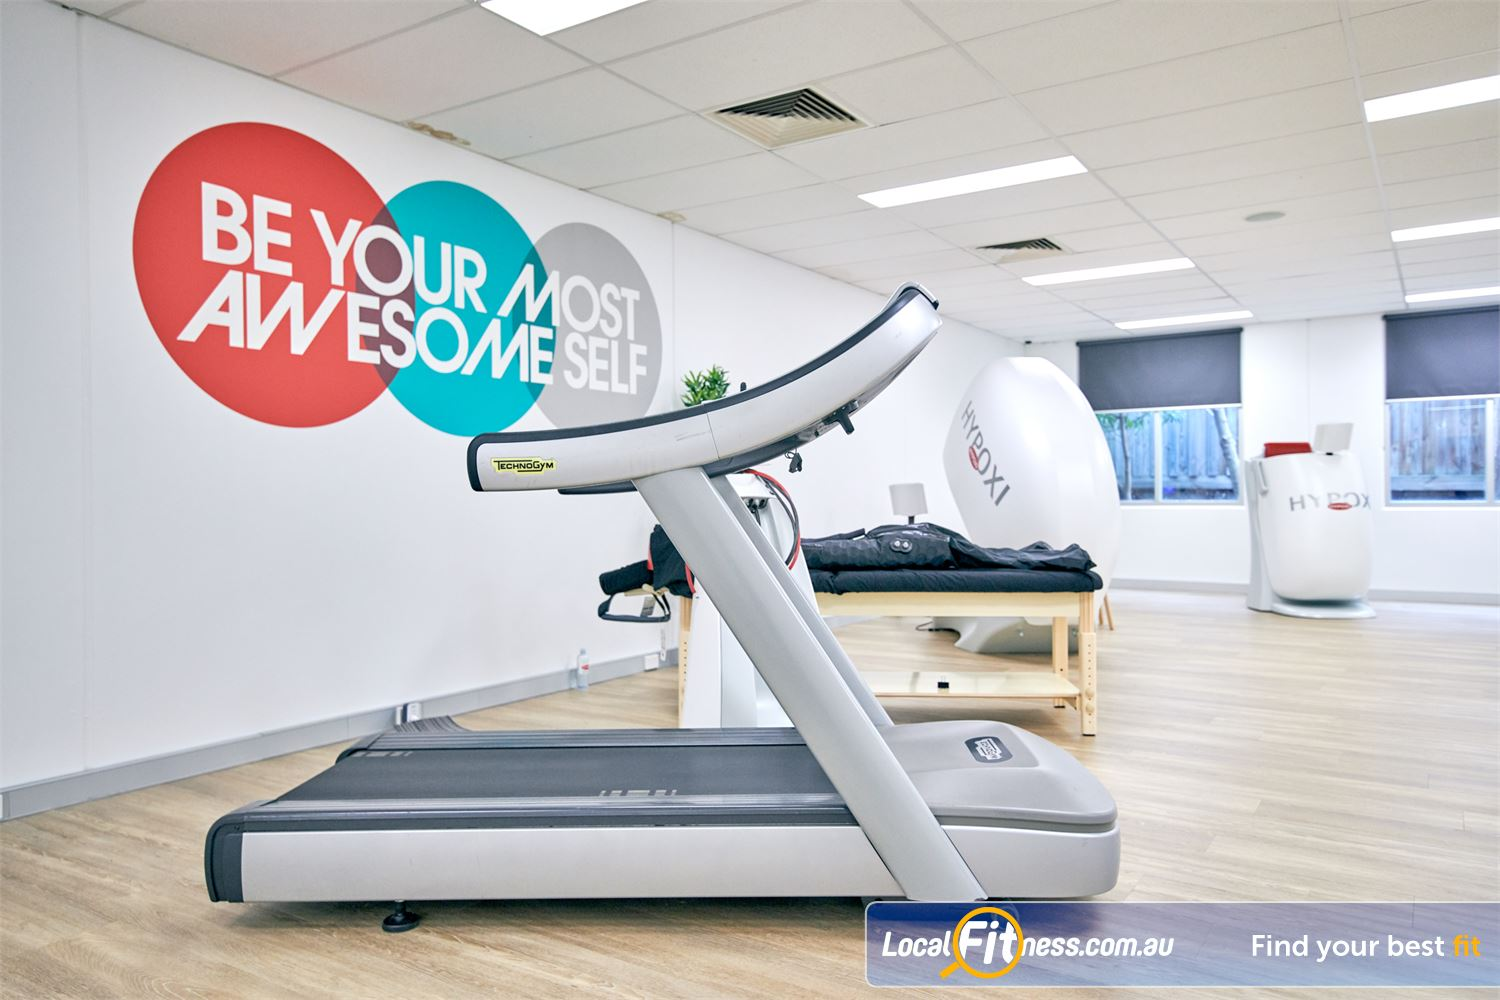 HYPOXI Weight Loss Balgowlah HYPOXI Balgowlah is great for men looking to lose those love handles.